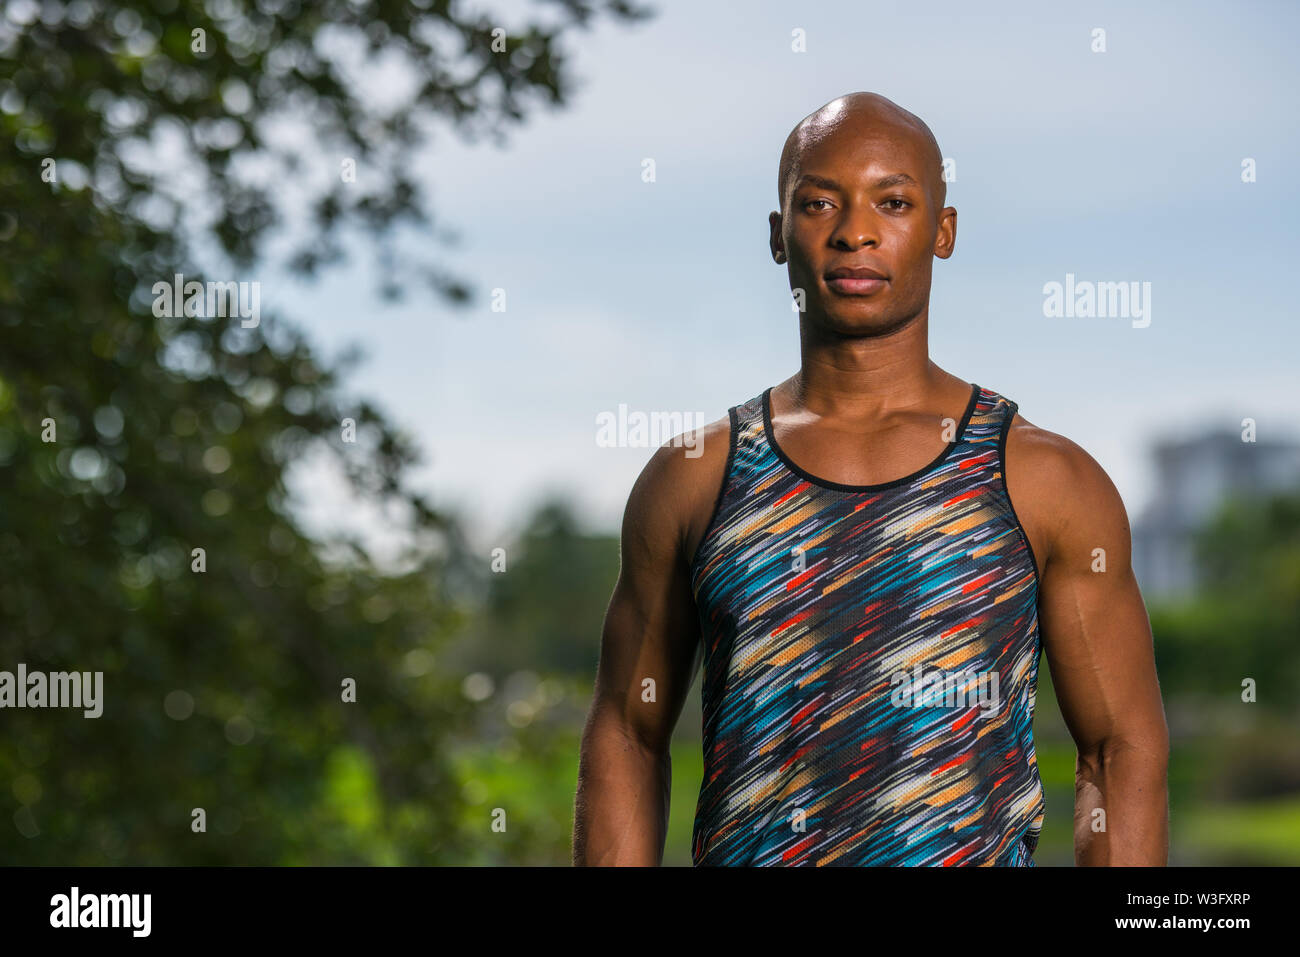 Portrait of an athletic black man with abstract colored shirt posing outdoors in a park - Stock Image